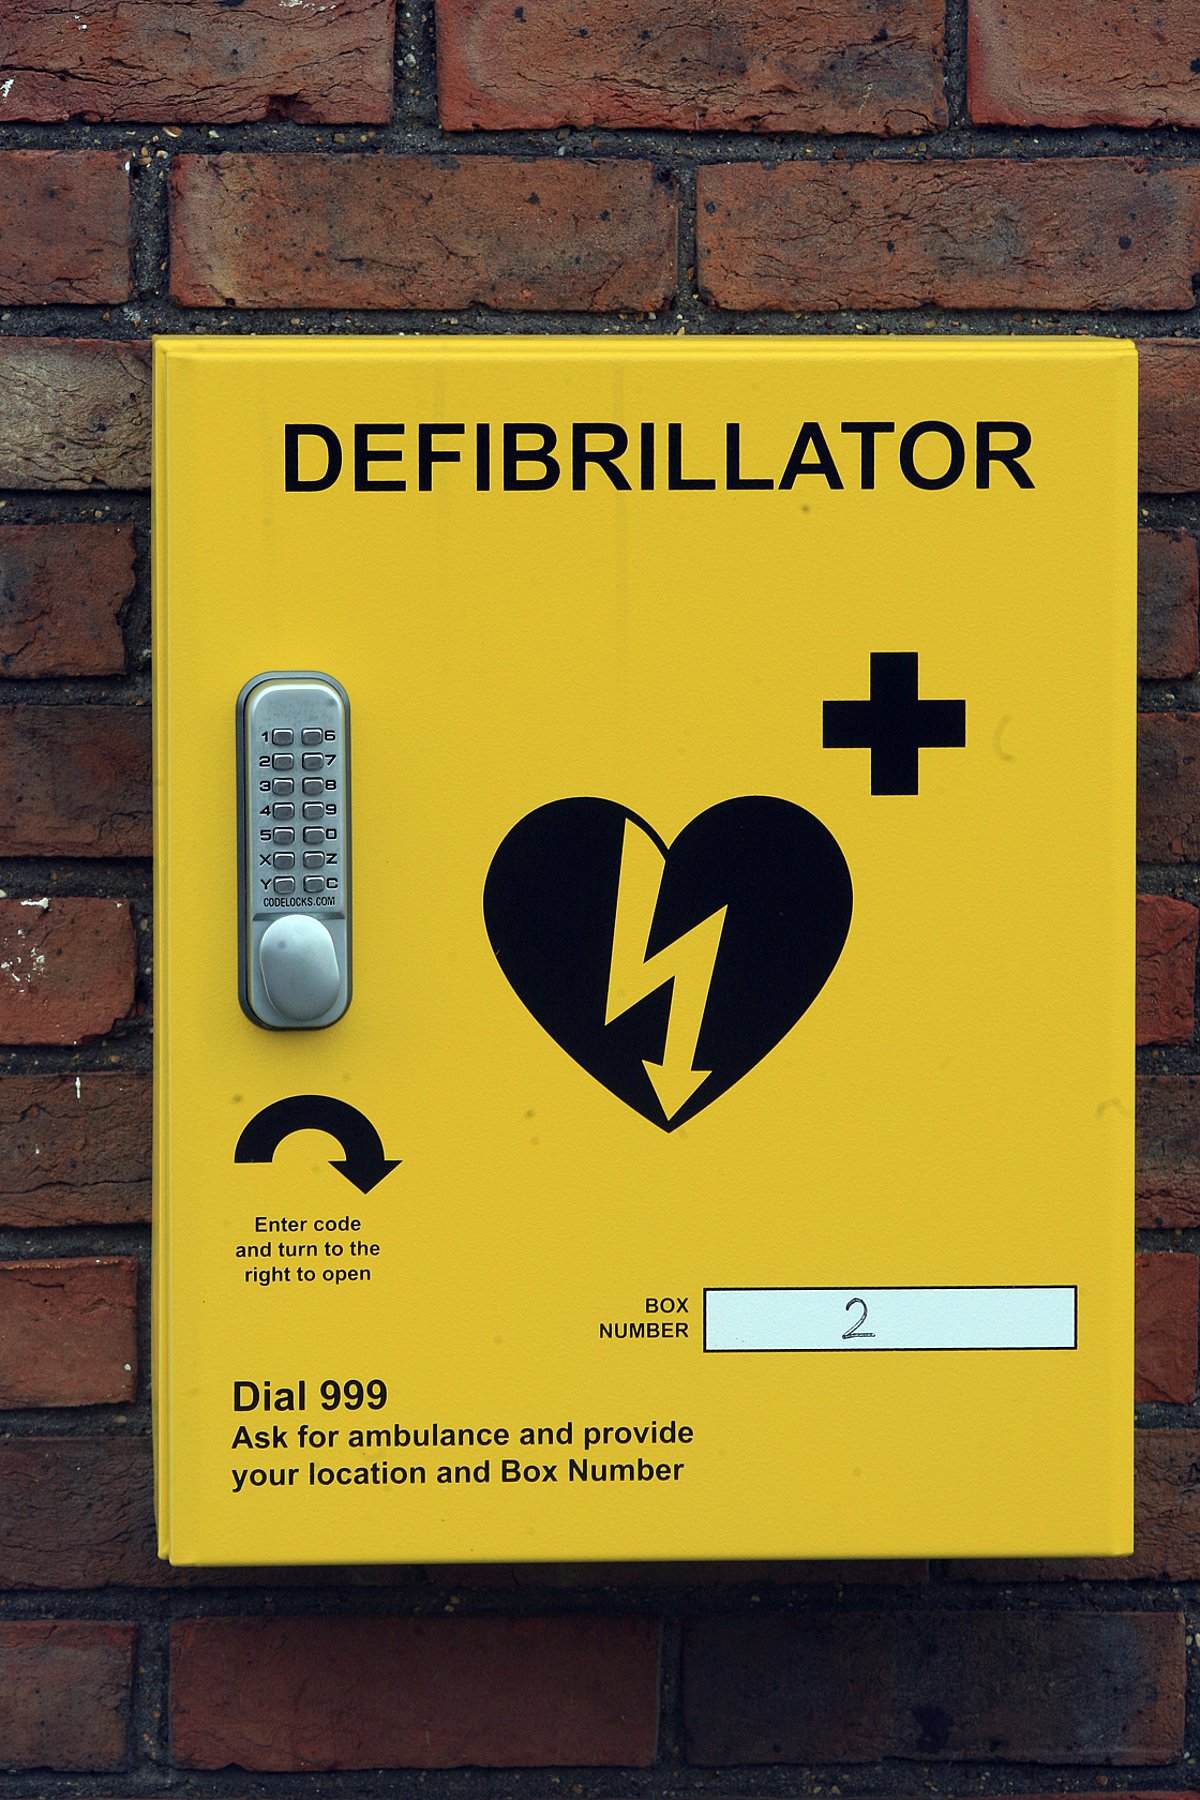 New defibrillators in village could save lives